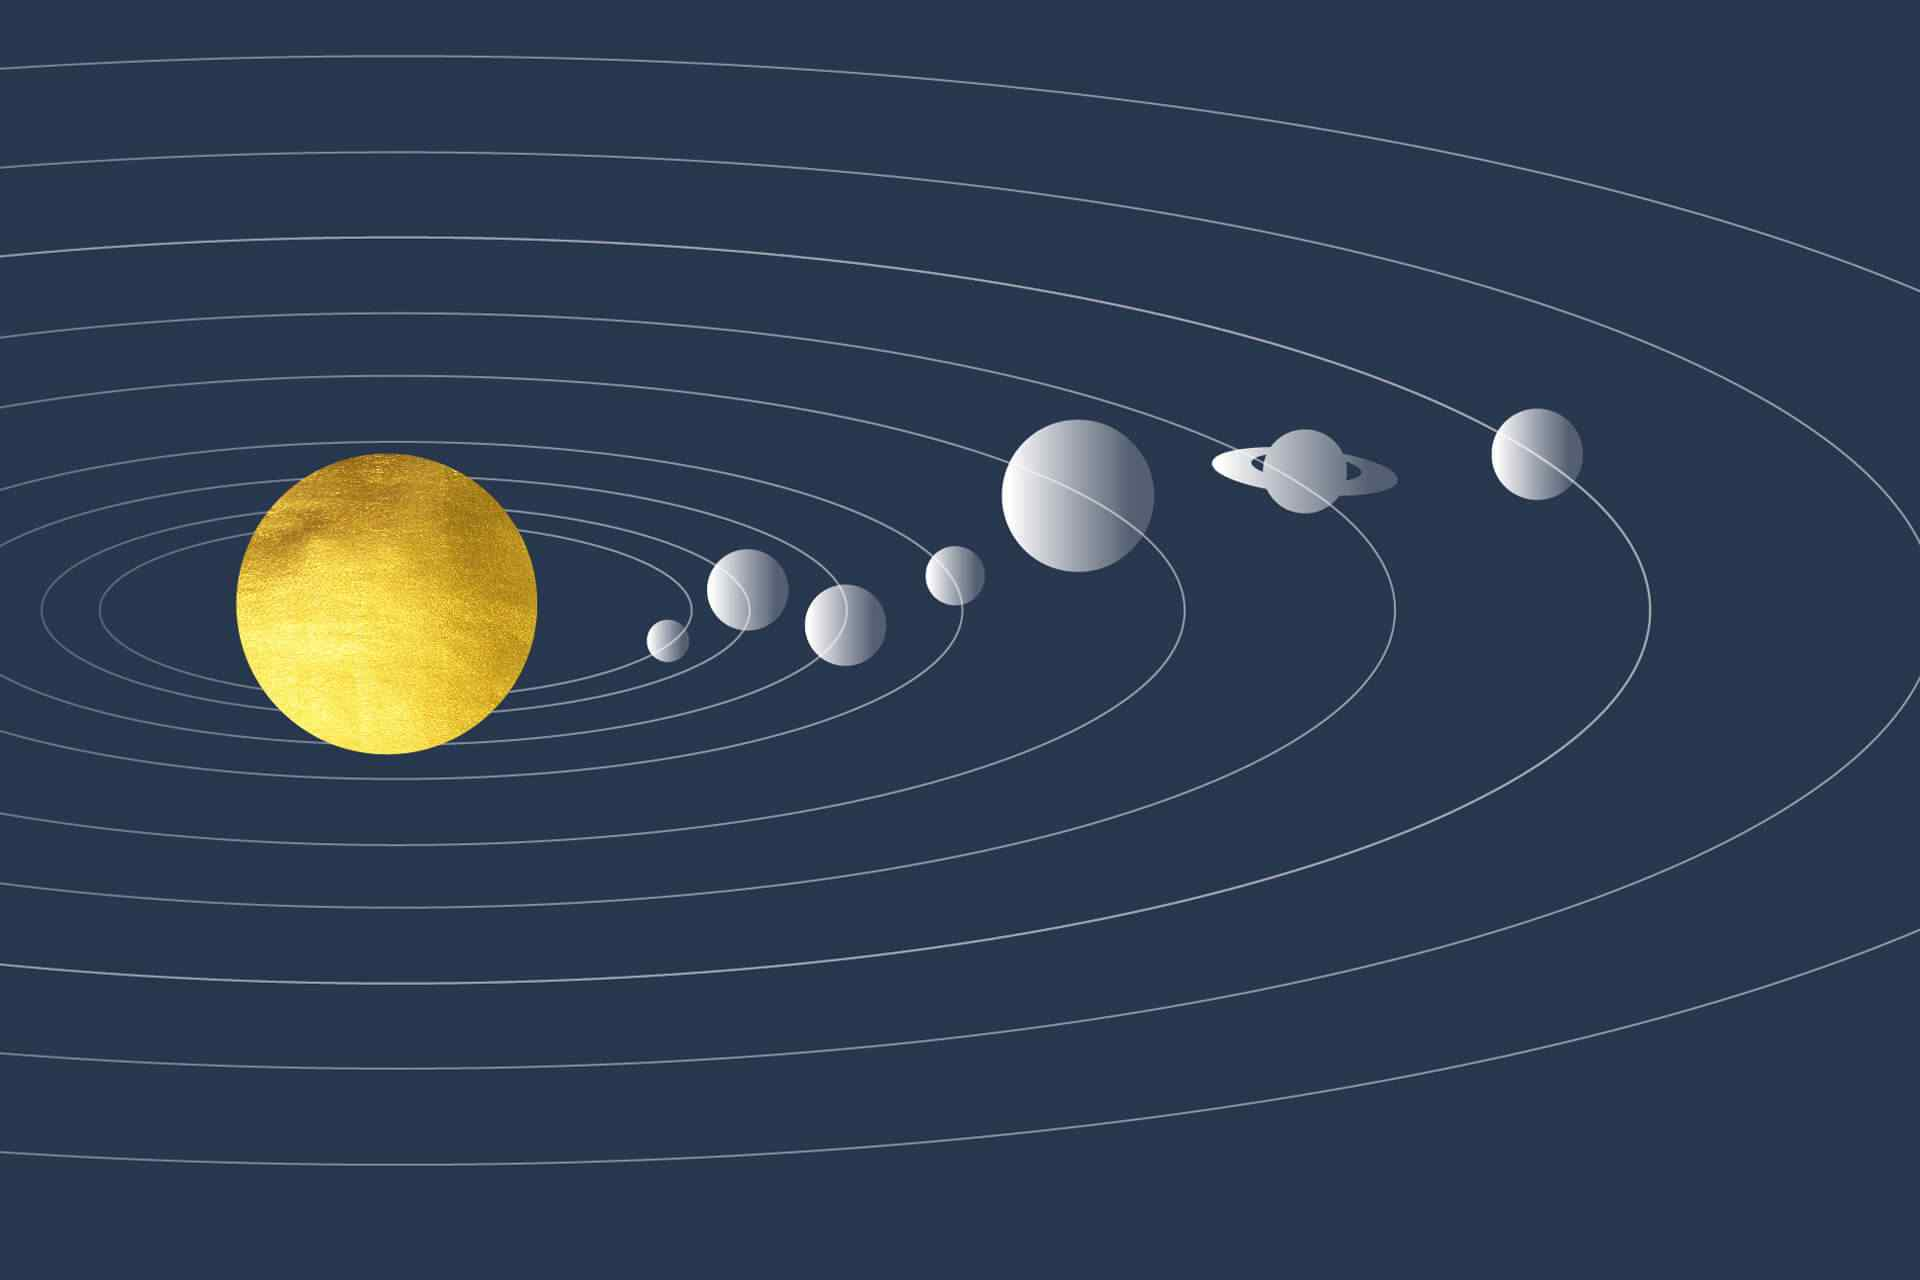 the scientific diagram of the path of planets orbiting a yellow sun